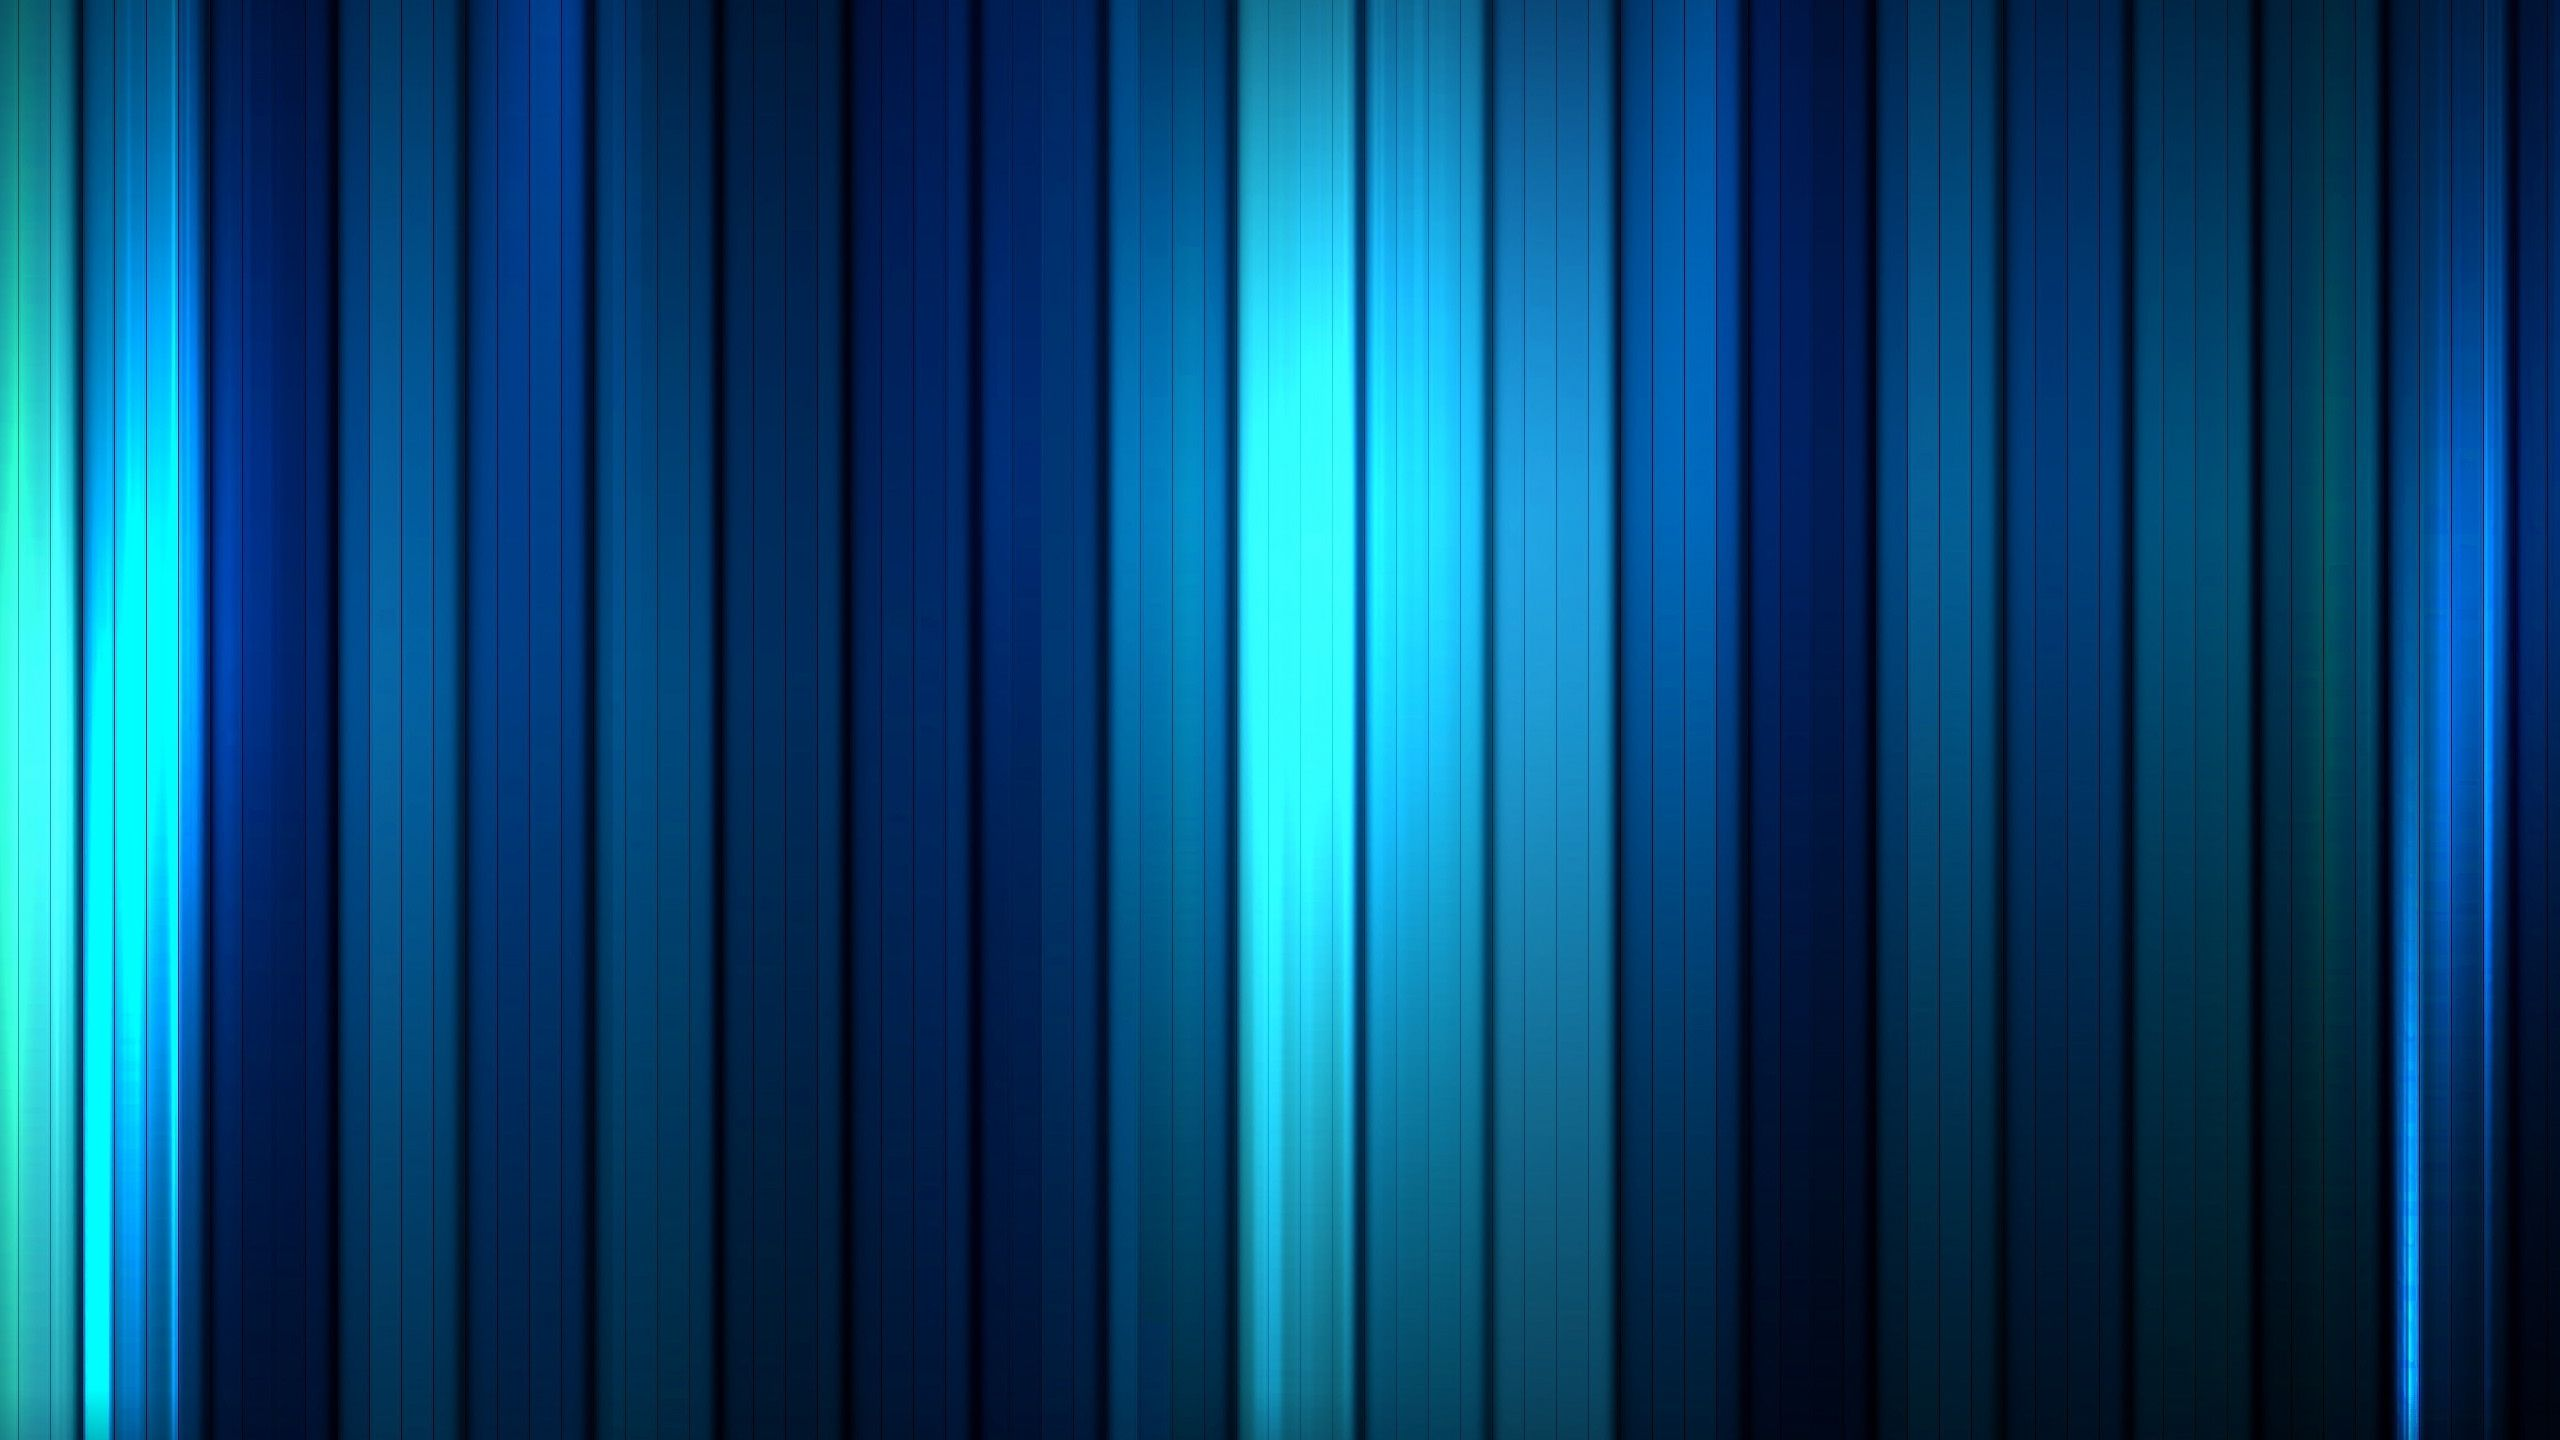 Background image 2560 x 1440 - Abstract Striped Texture Textures Simple Background 2560x1440